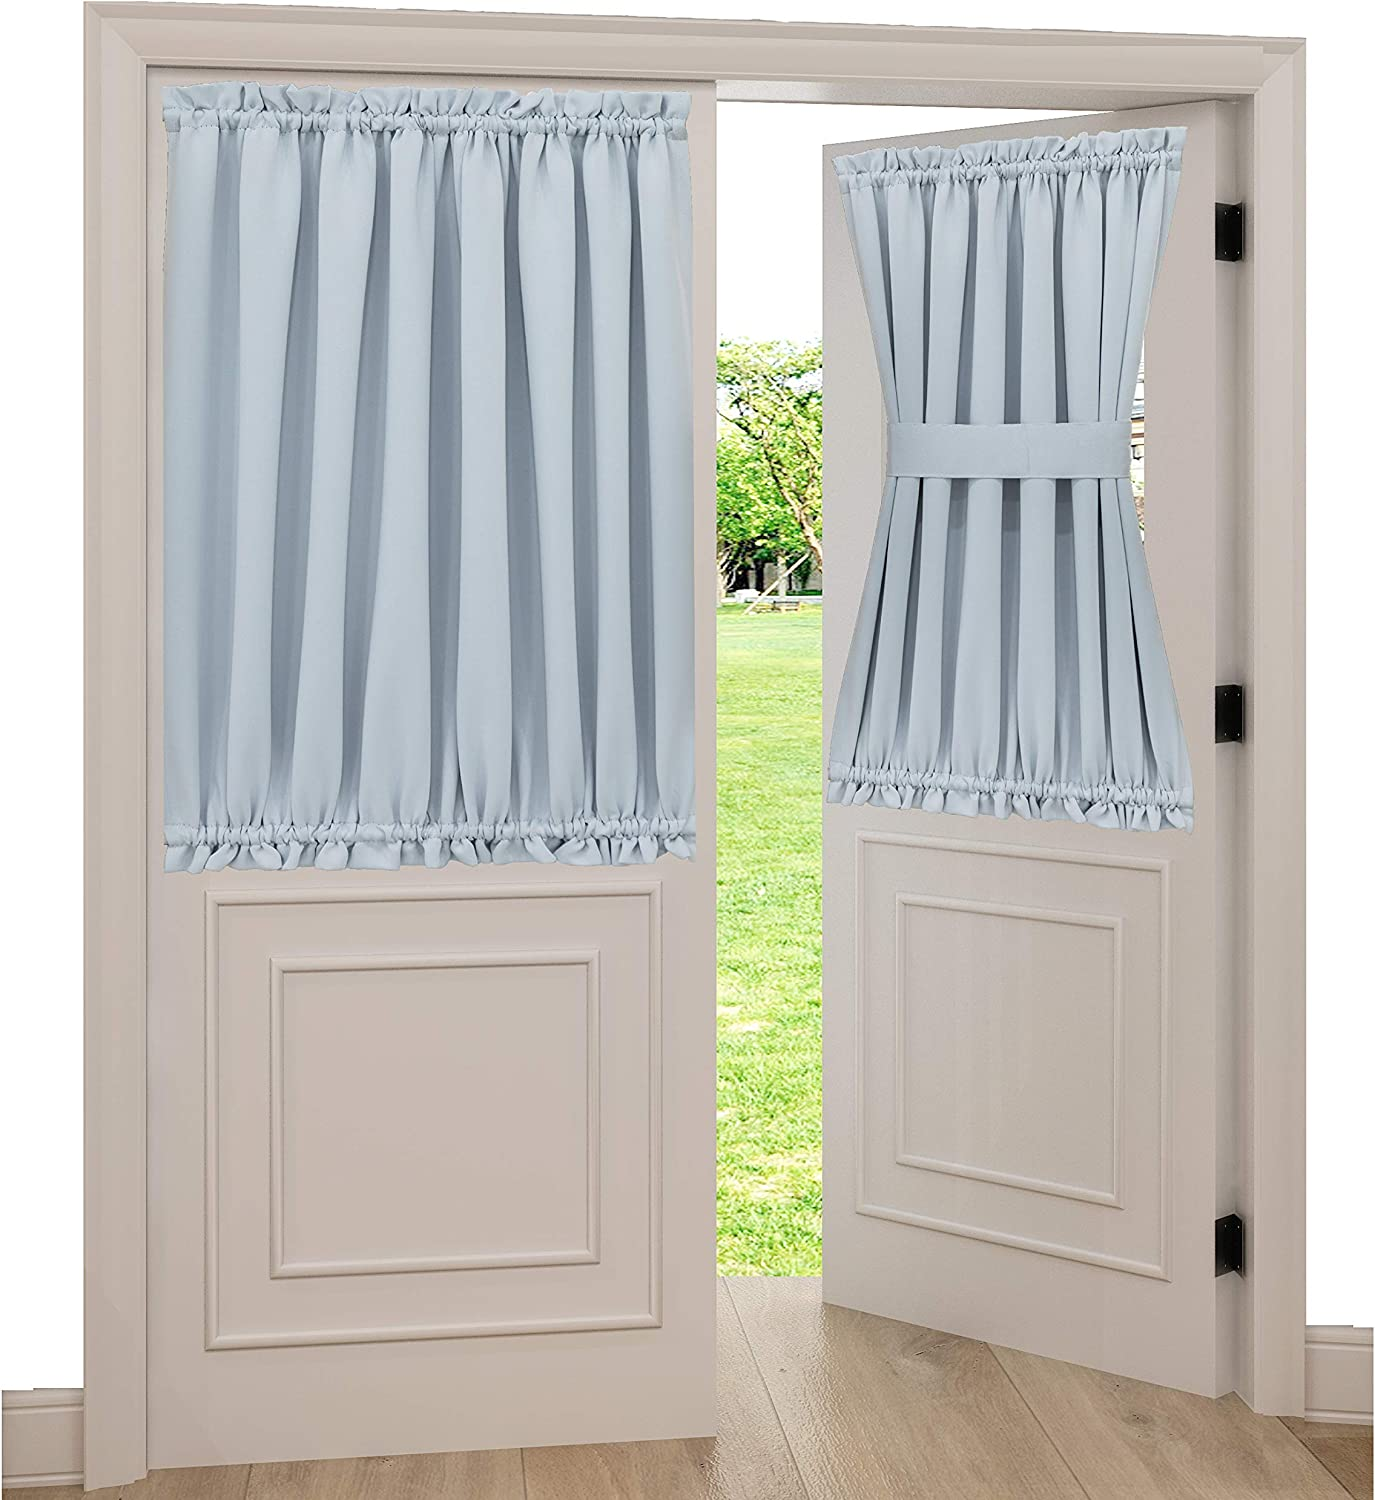 """Spring Garden Home White Blackout Curtains for Door Window Room Darkening Blackout Curtain Drapery for Front Glass Door, 1 Panel, 54"""" Width x 40"""" Length, Greyish White"""